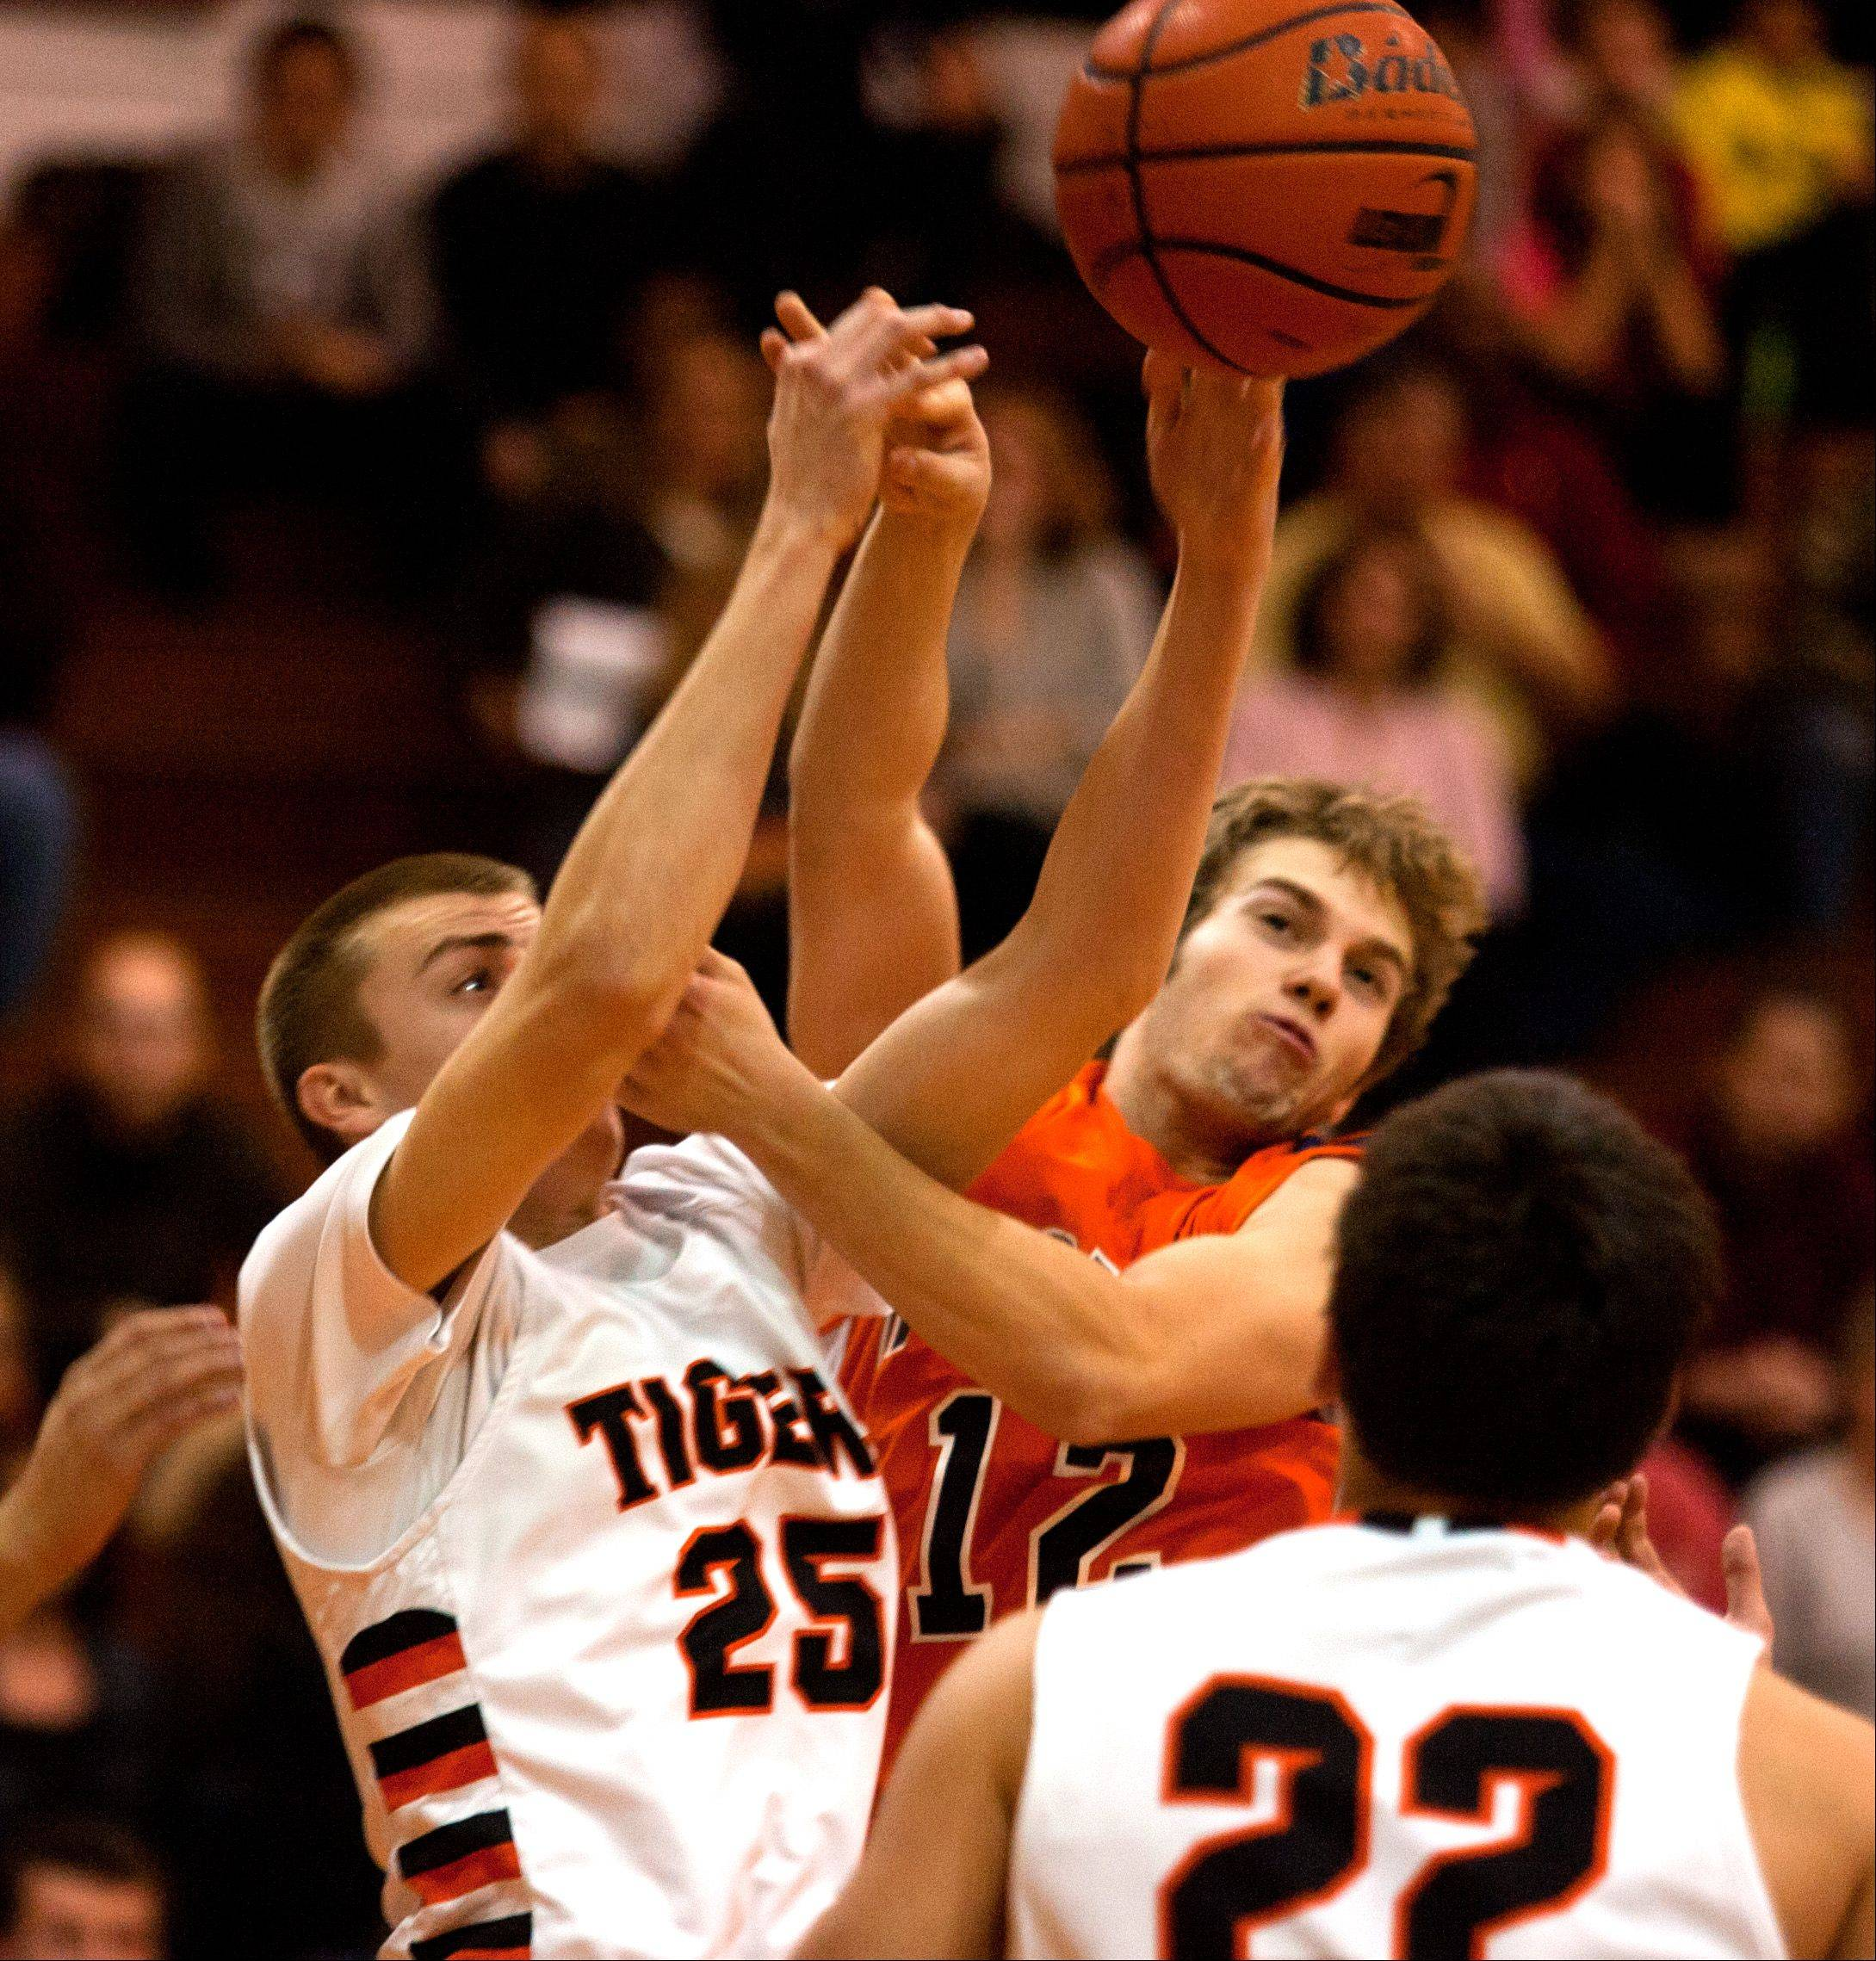 Wheaton Warrenville South's Michael Kramer battles Naperville North's Bryan LoLordo.